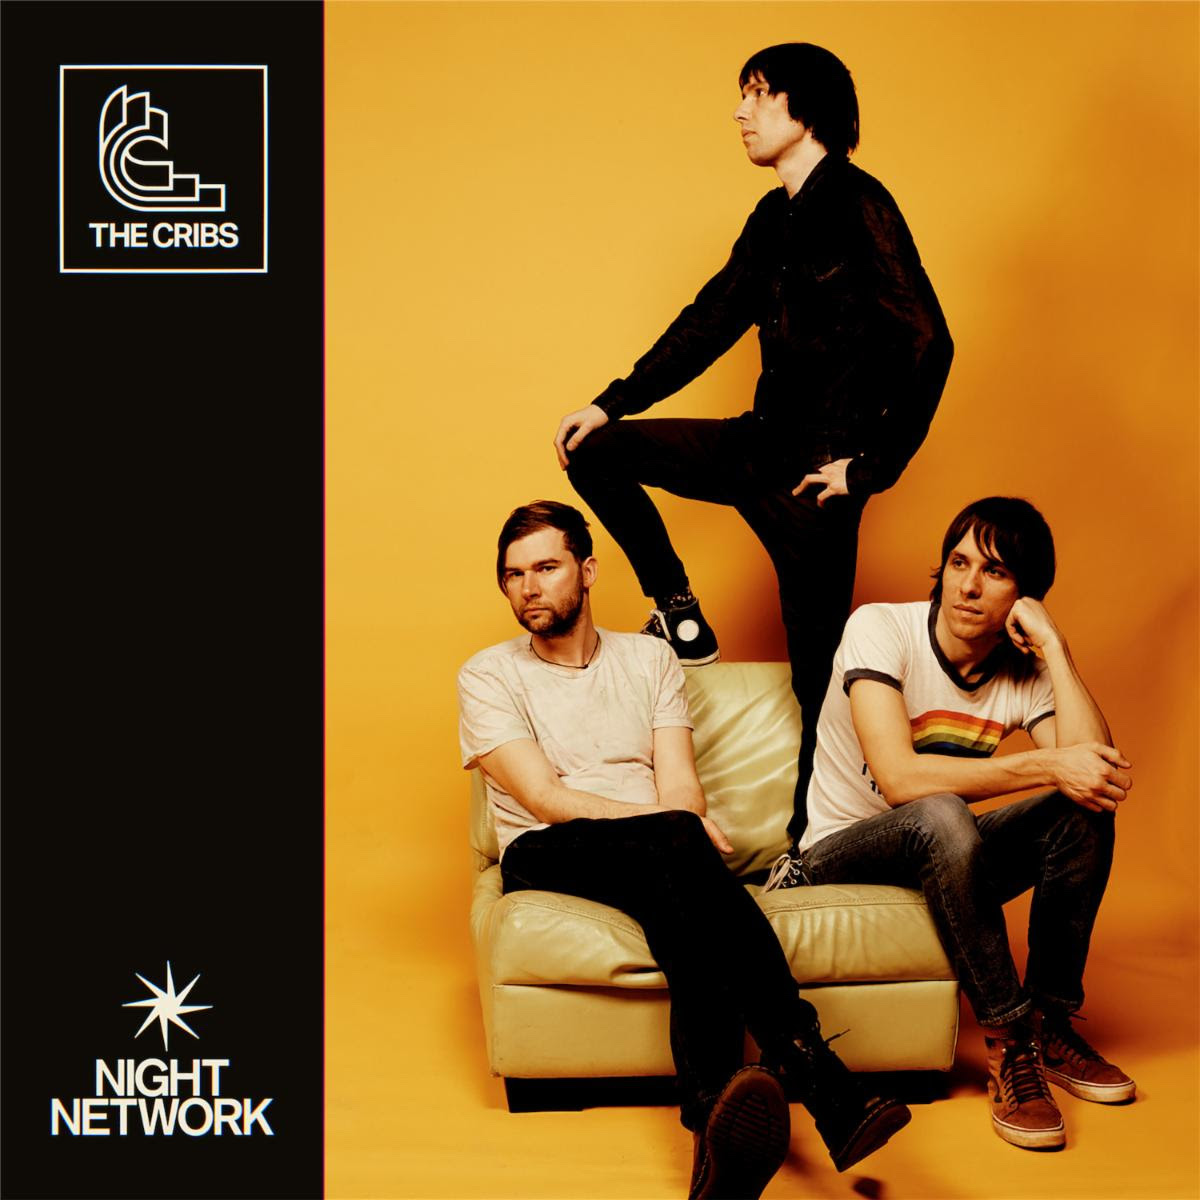 the cribs night network album cover art The Cribs Announce New Album Night Network, Share Running Into You: Stream